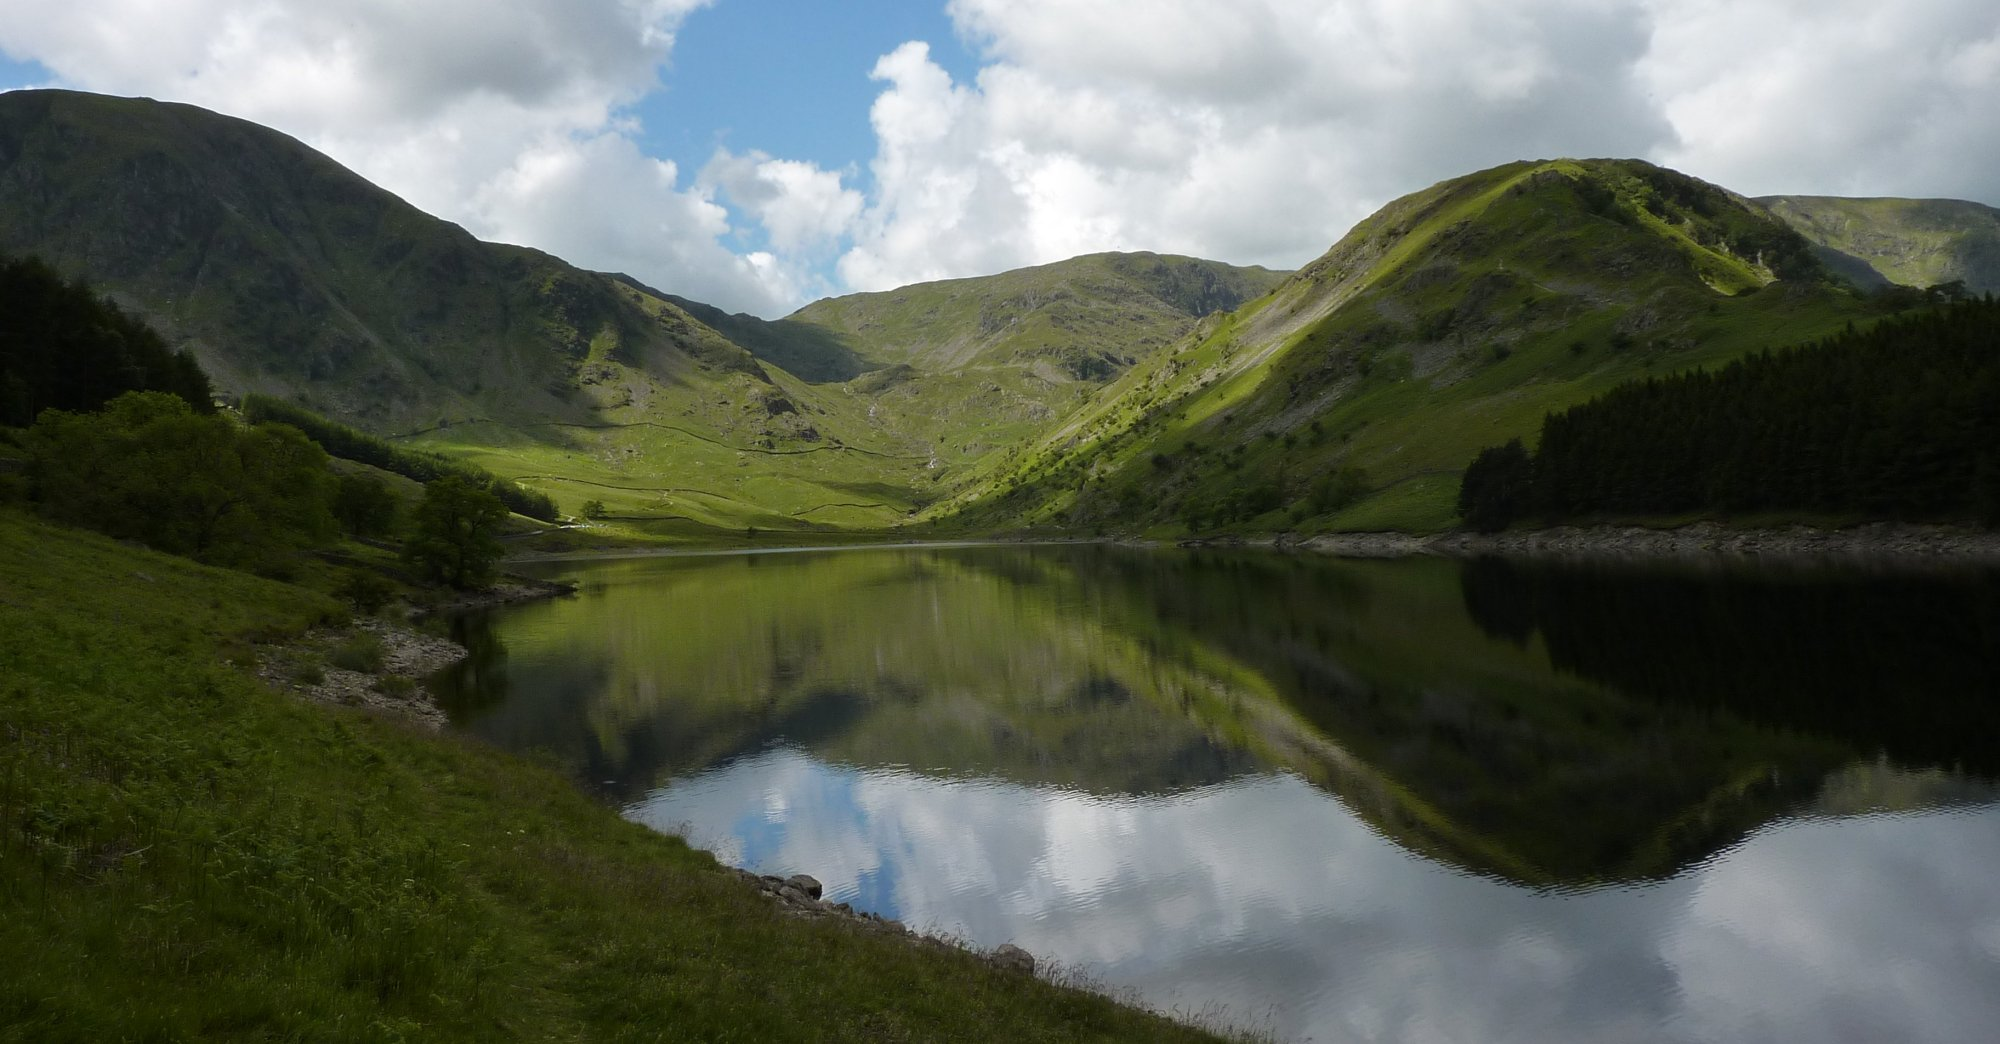 Reflections of the Fells